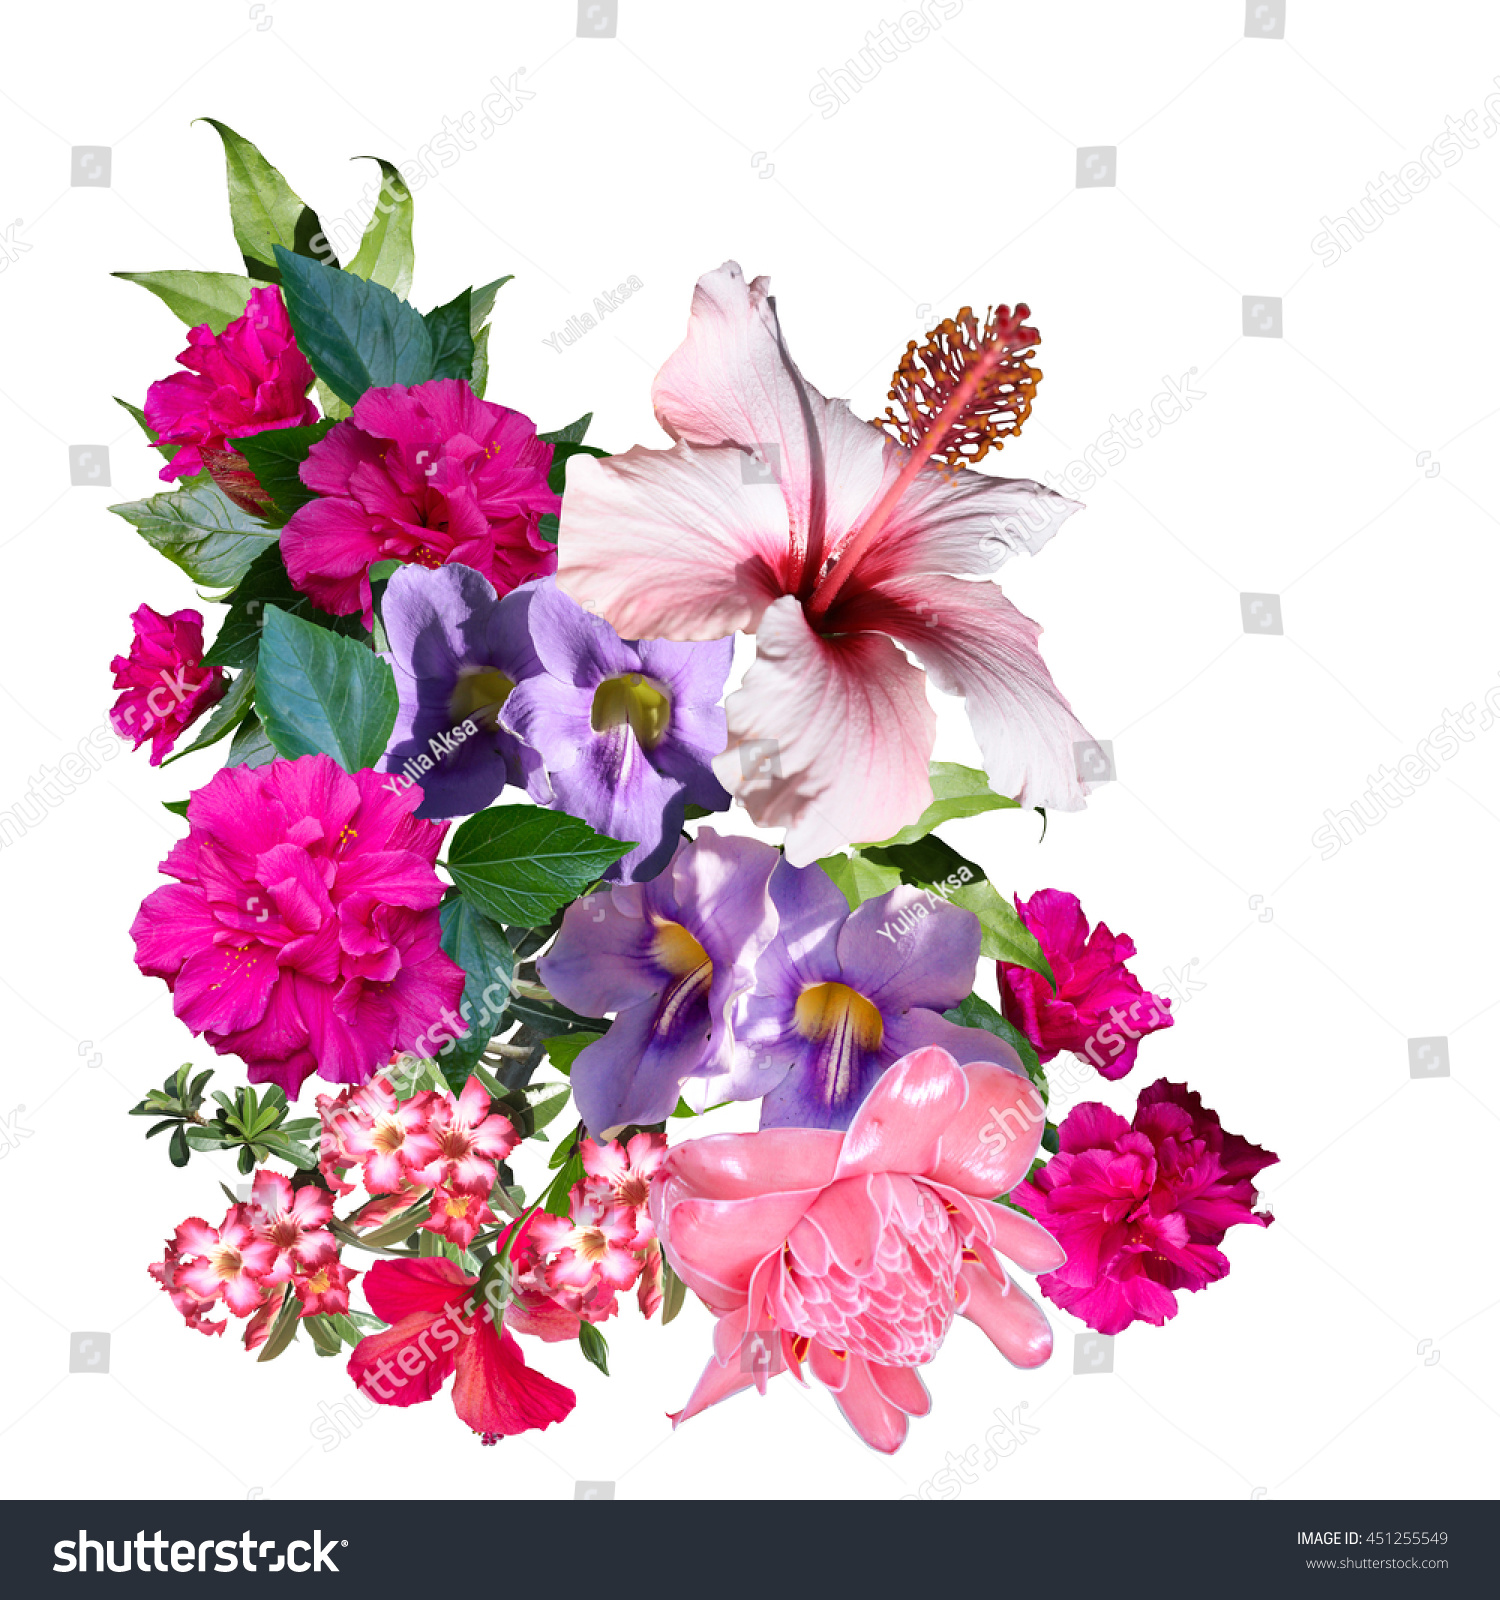 Tropical Flowers Bouquet Isolated On White Stock Photo (Royalty Free ...